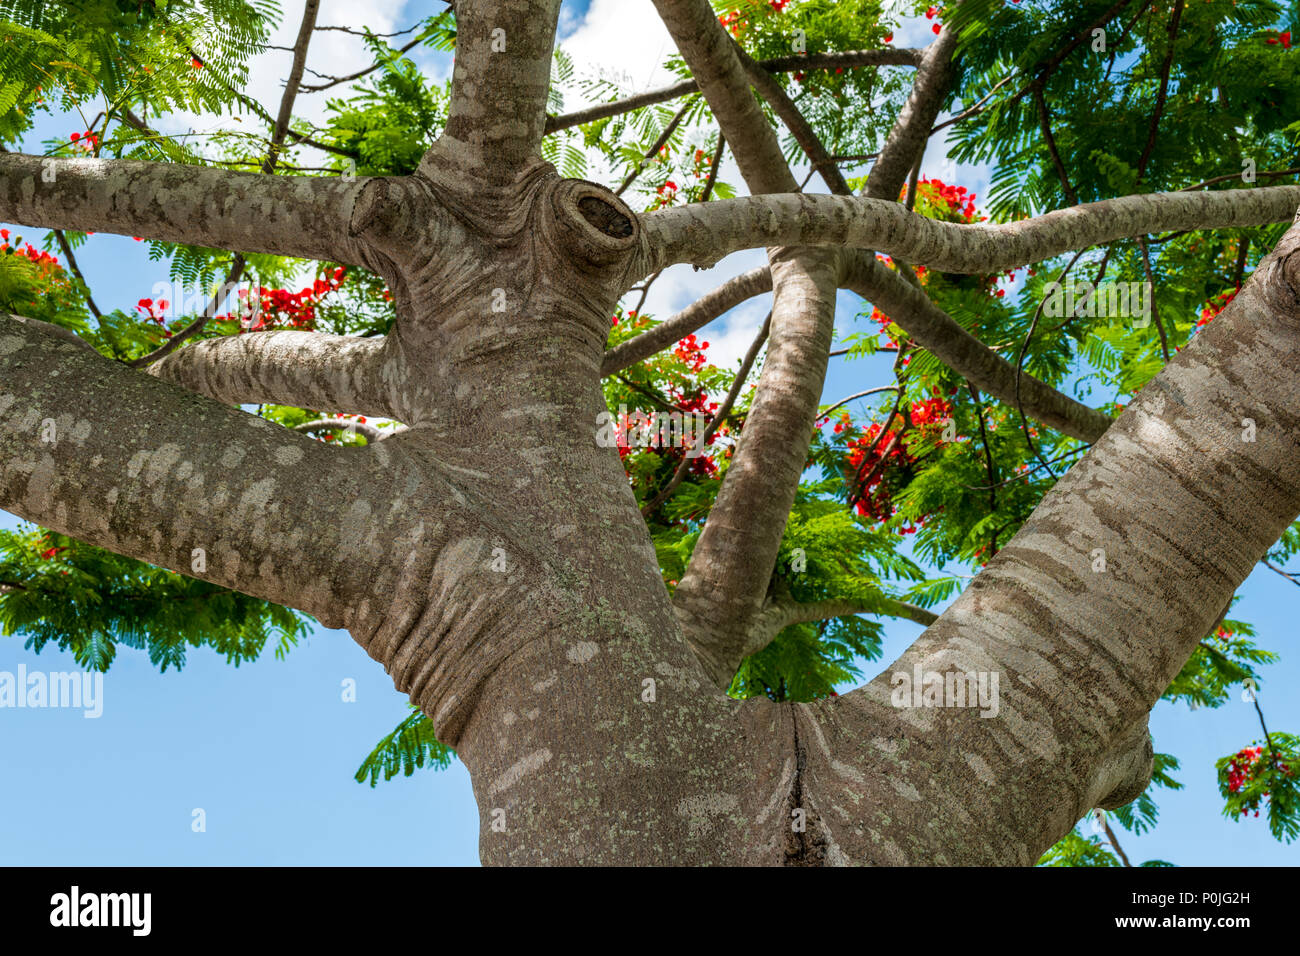 Trunk & vibrant red flowers; Royal poinciana; Delonix regia; flame tree; south central Florida; USA - Stock Image